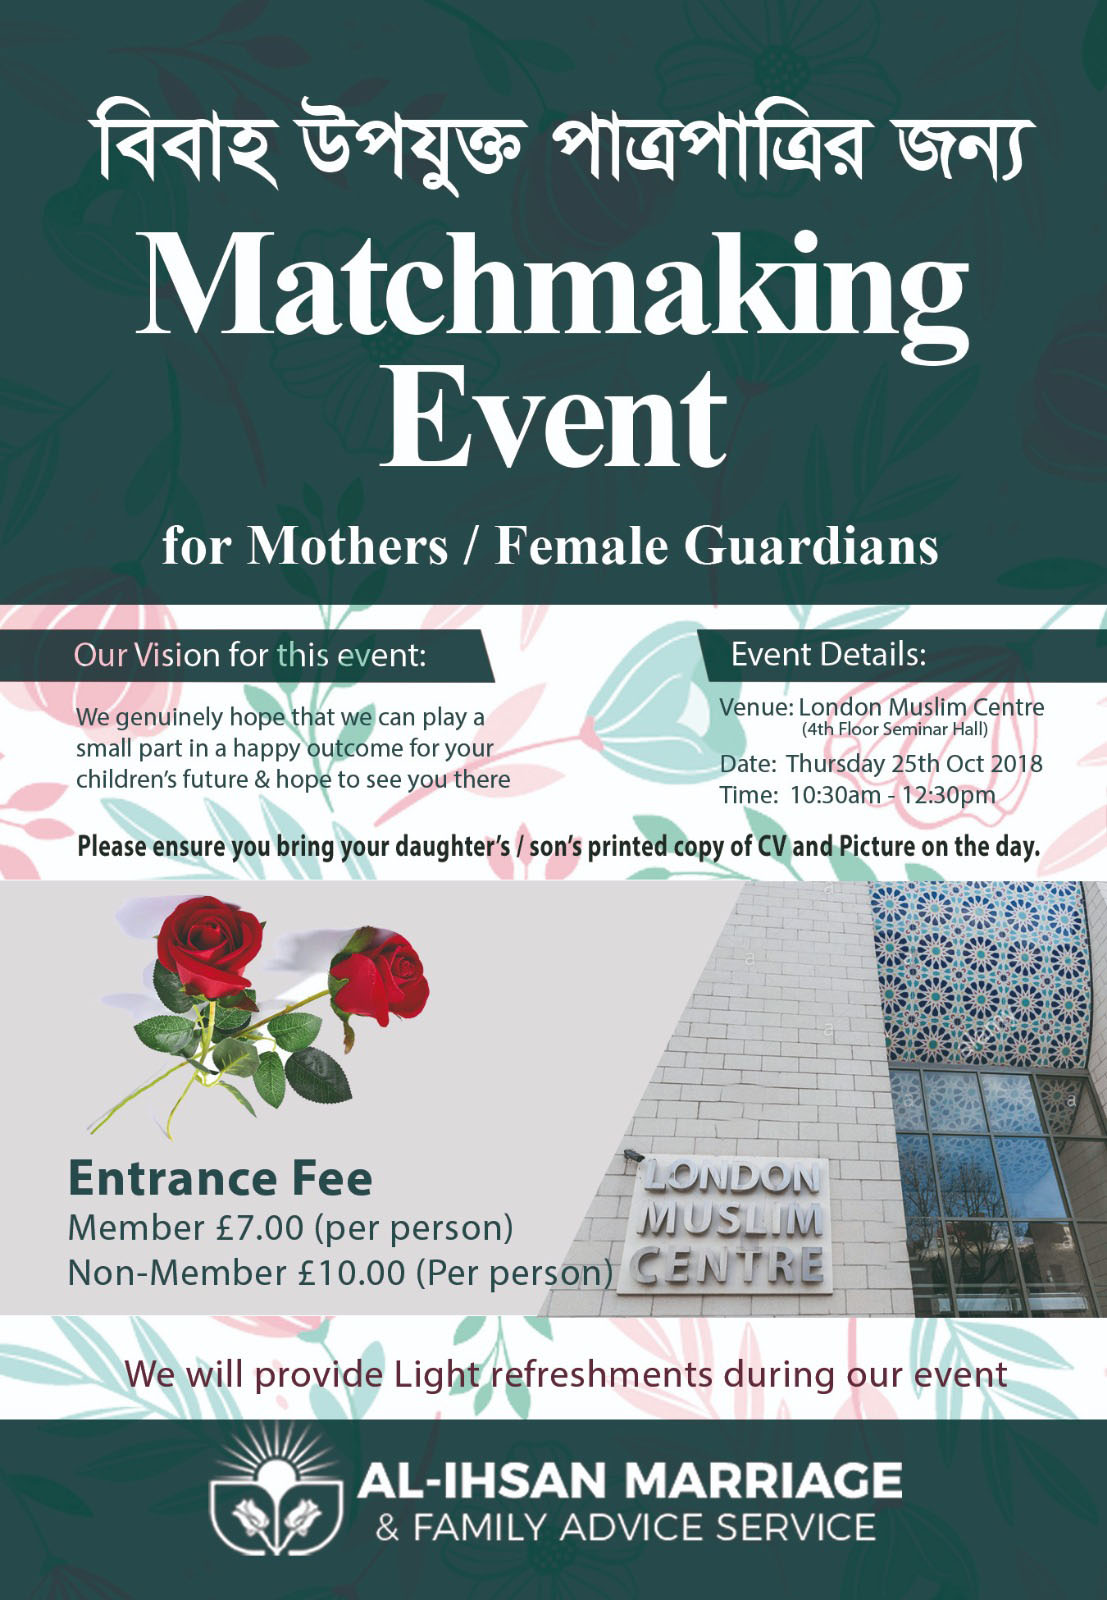 Matchmaking Event for Mothers / Female Guardians 2018